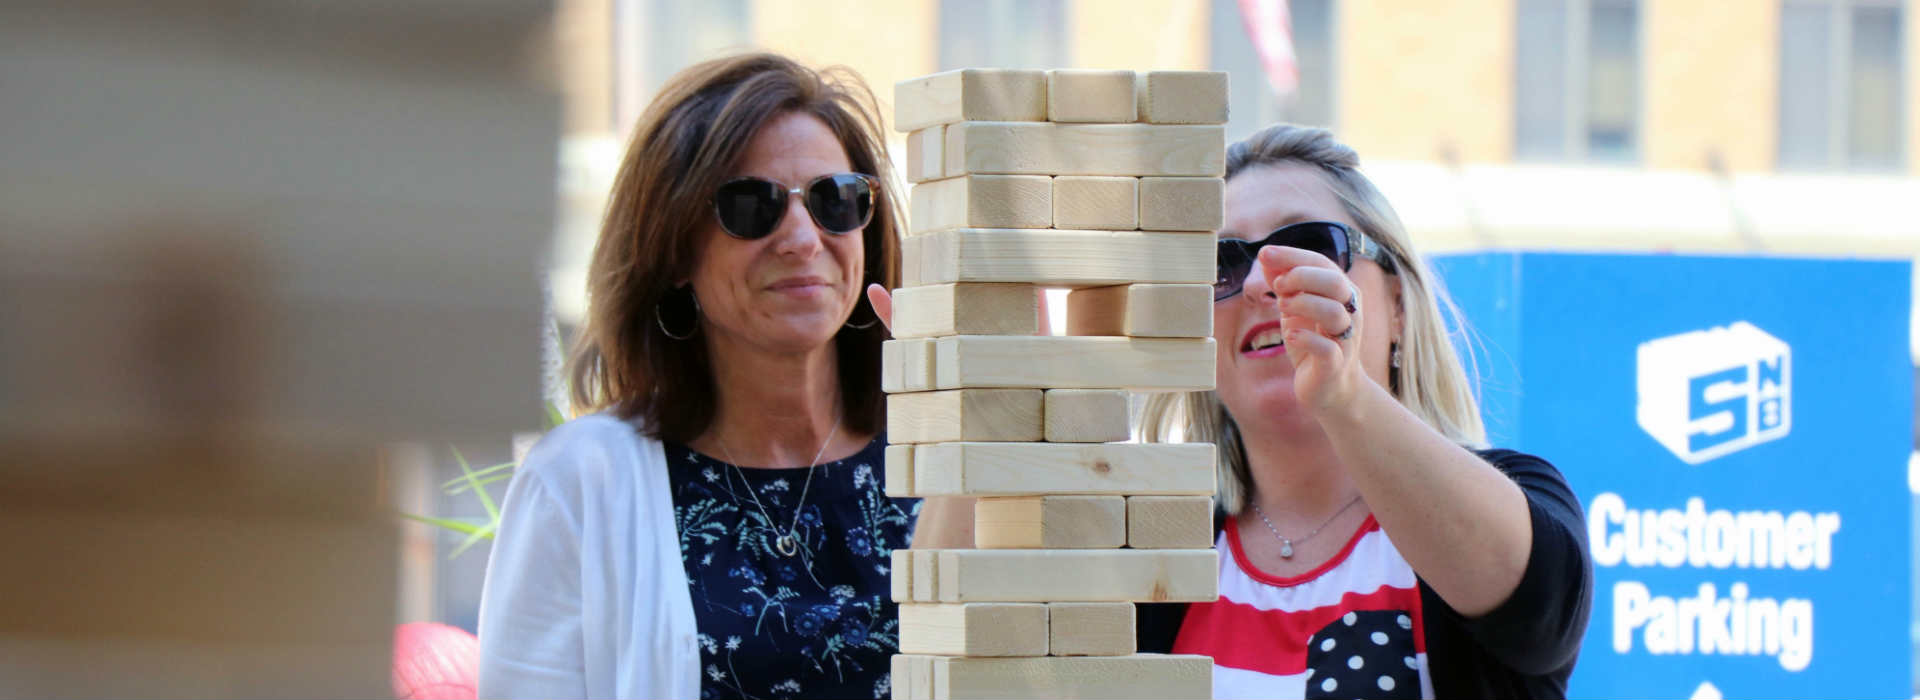 SNB Employees Playing Giant Jenga